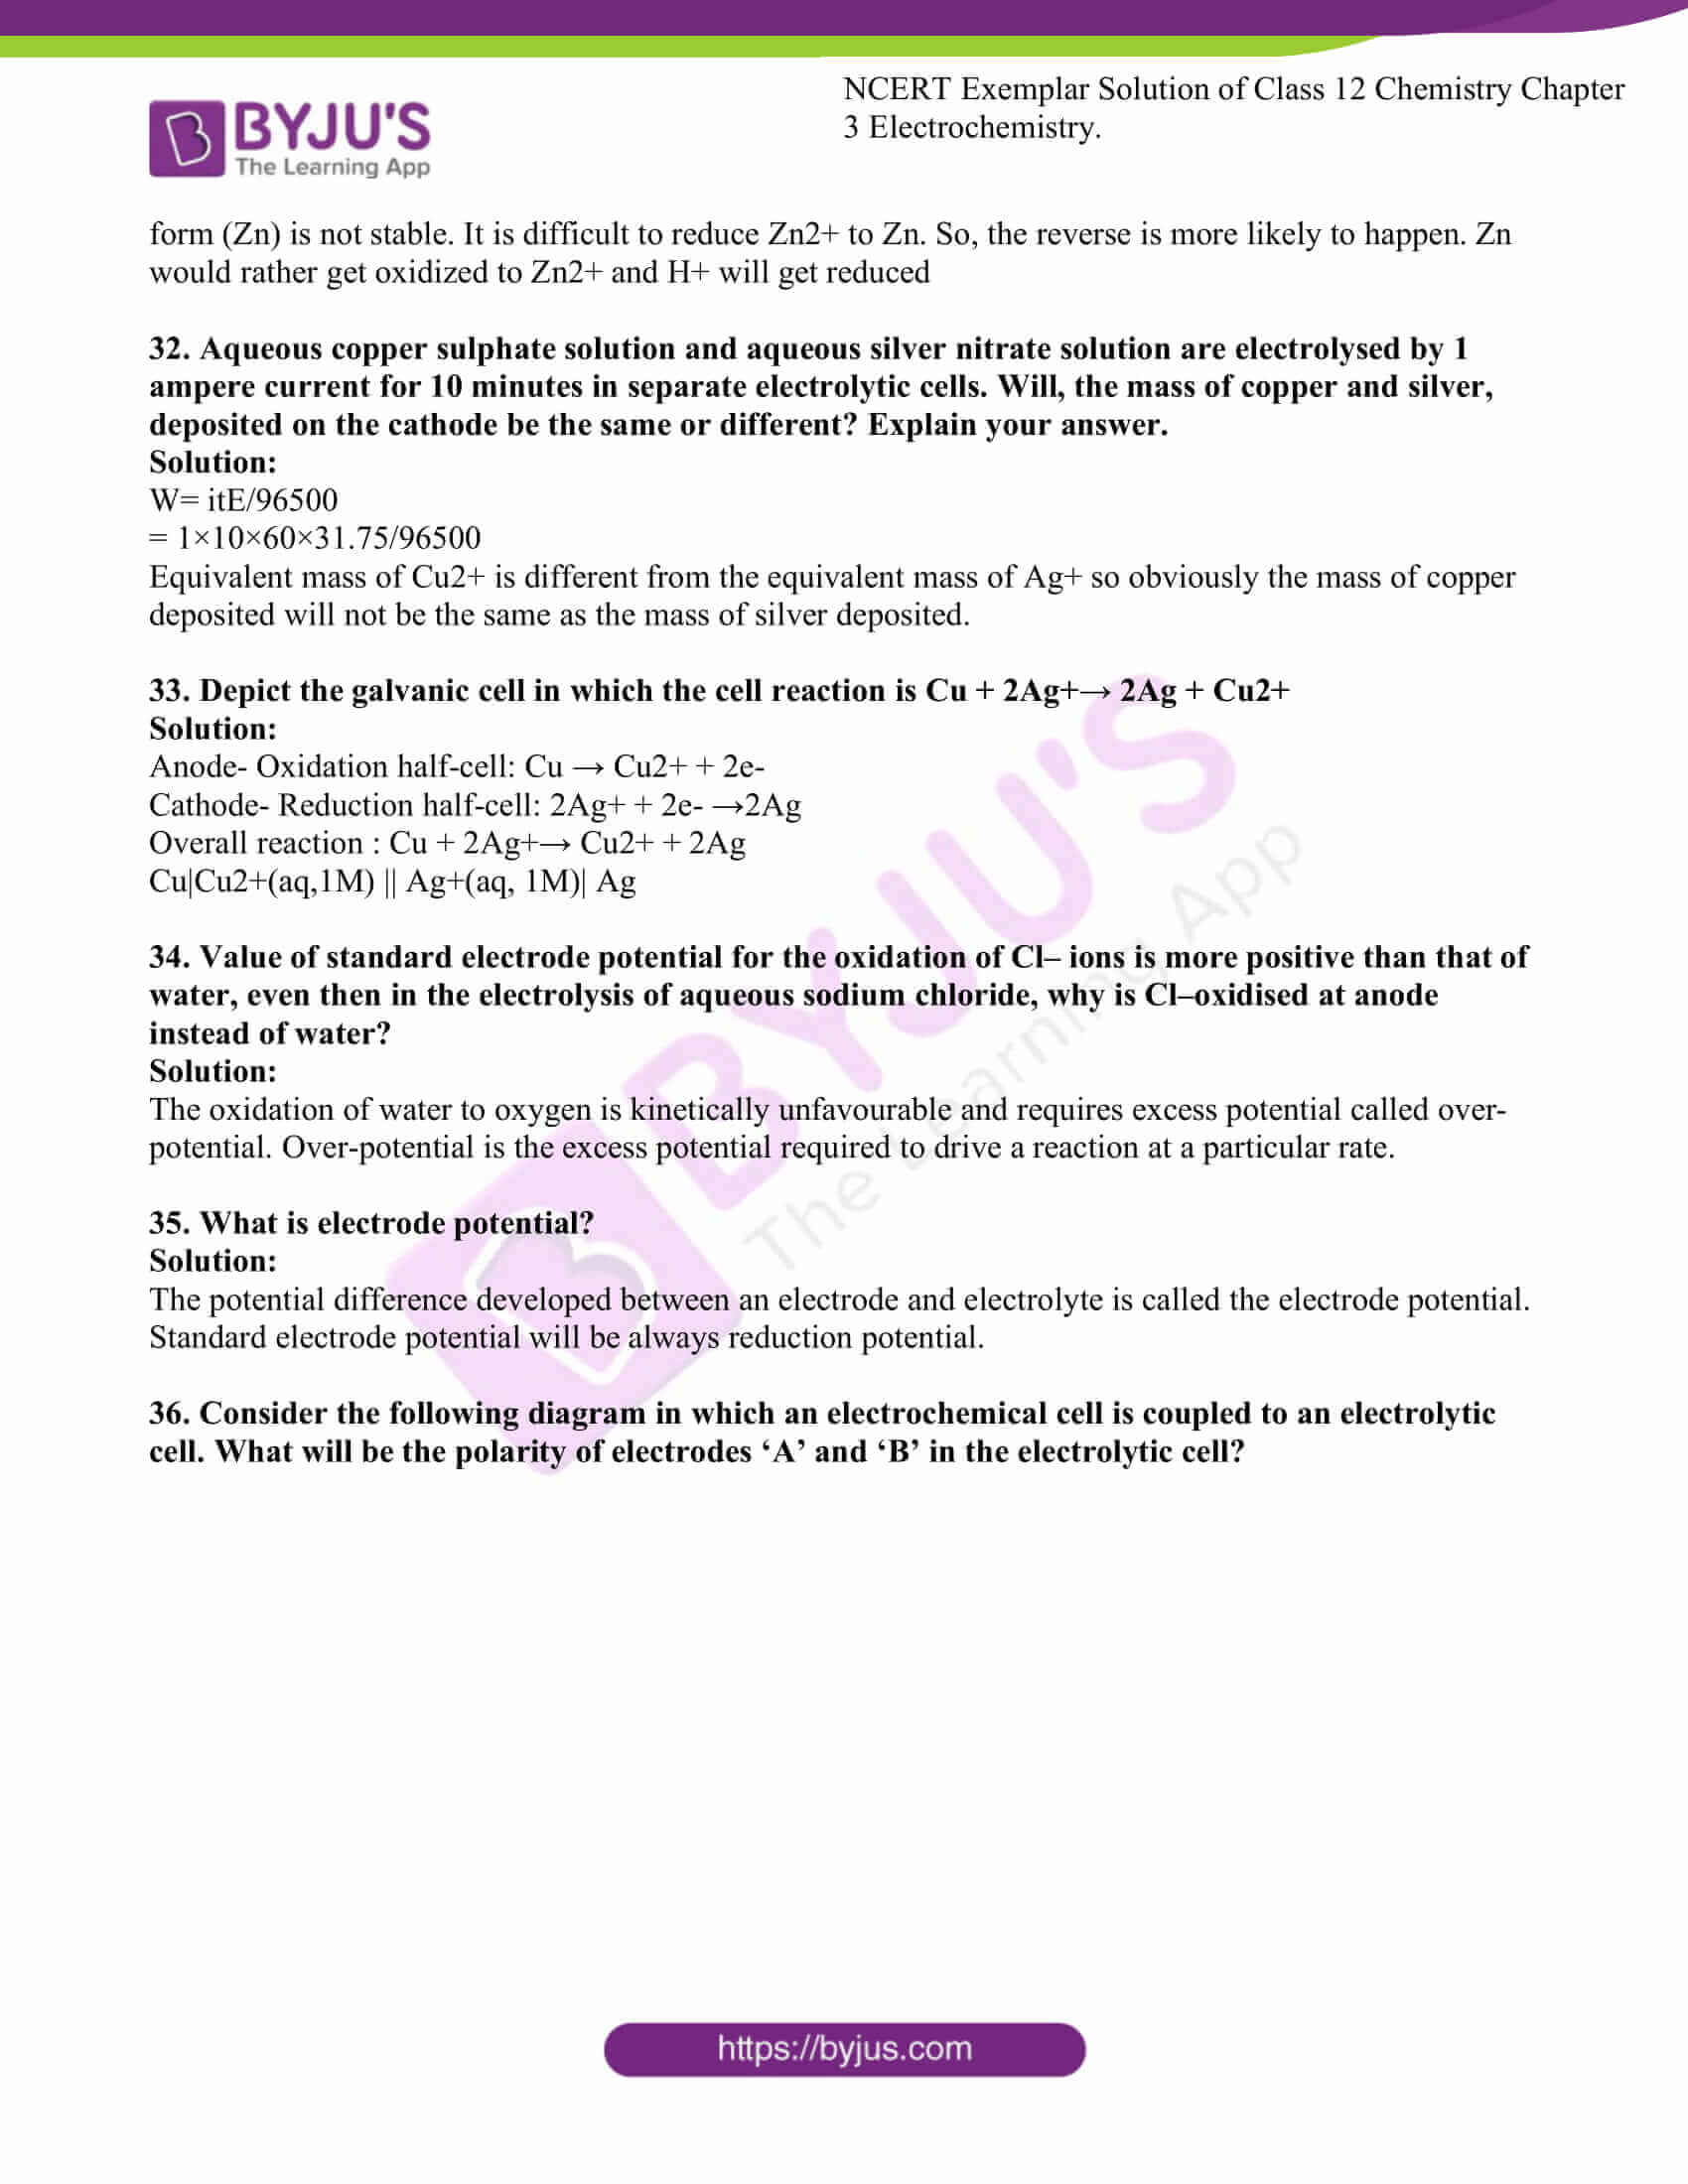 ncert exemplar solutions for class 12 chemistry chapter 3 electrochemistry 07